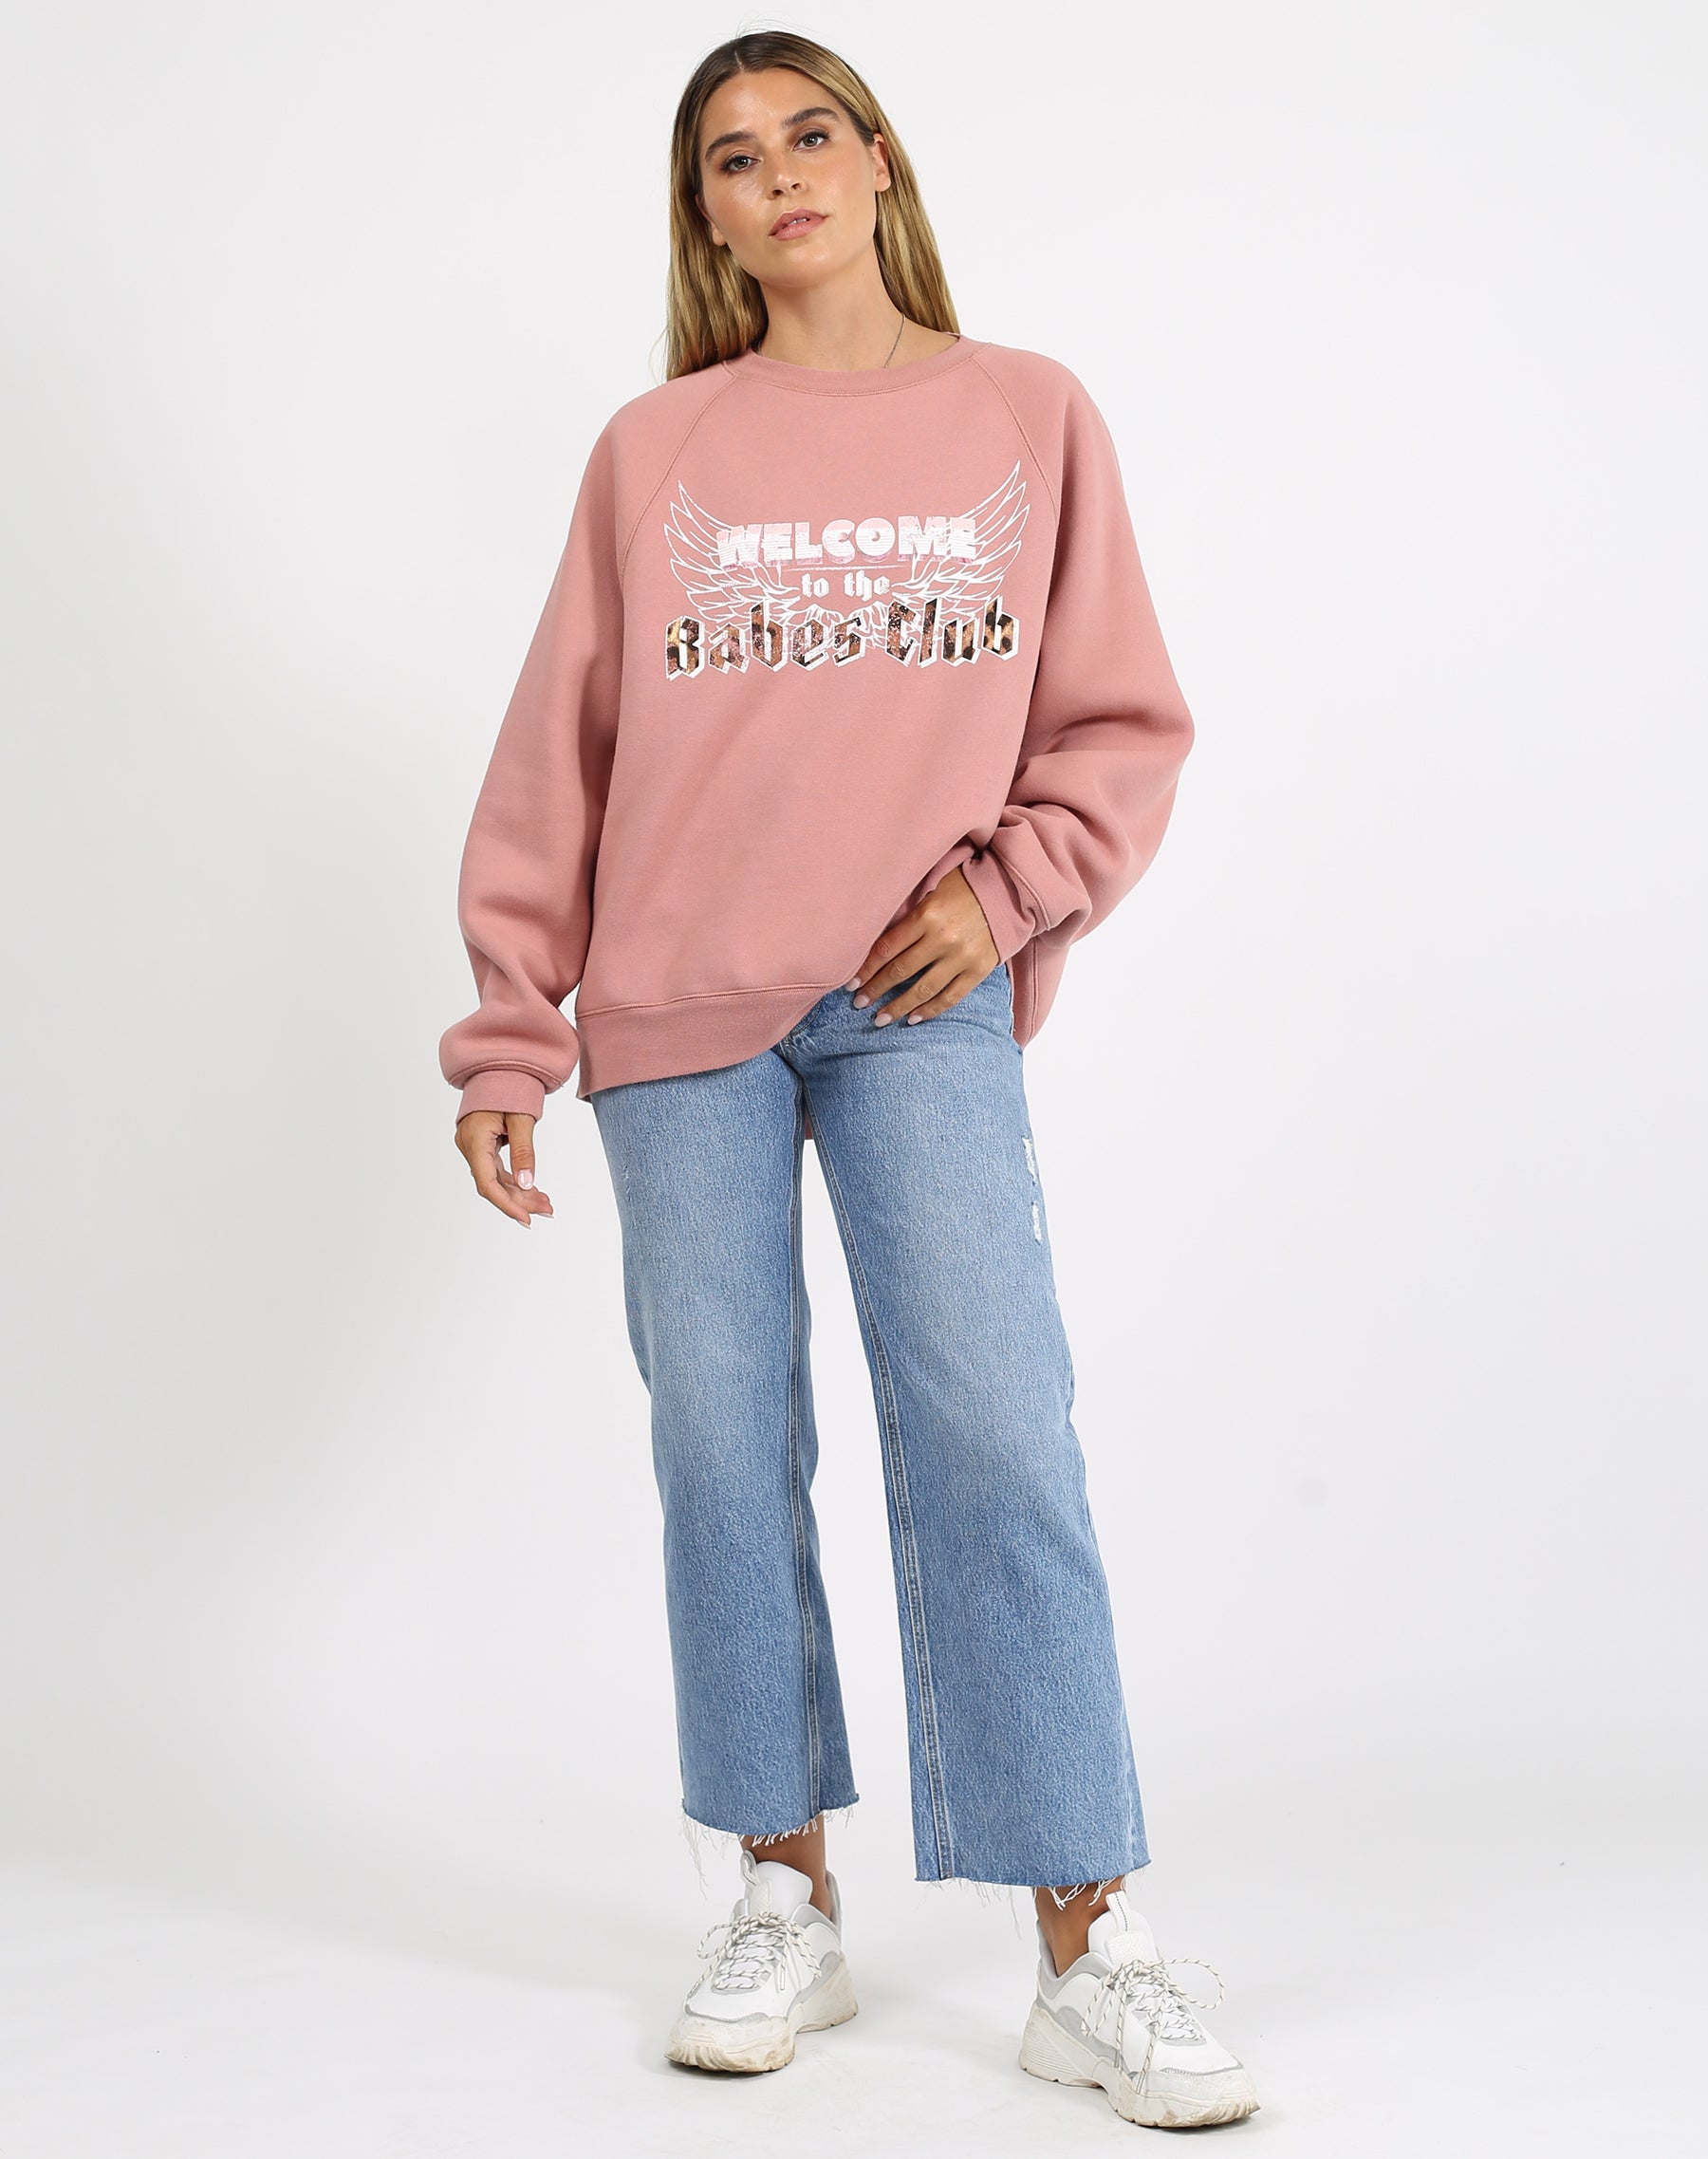 This is a photo of a model wearing the welcome to the babes club not your boyfriend fit crew neck sweatshirt in vintage rose by brunette the label.